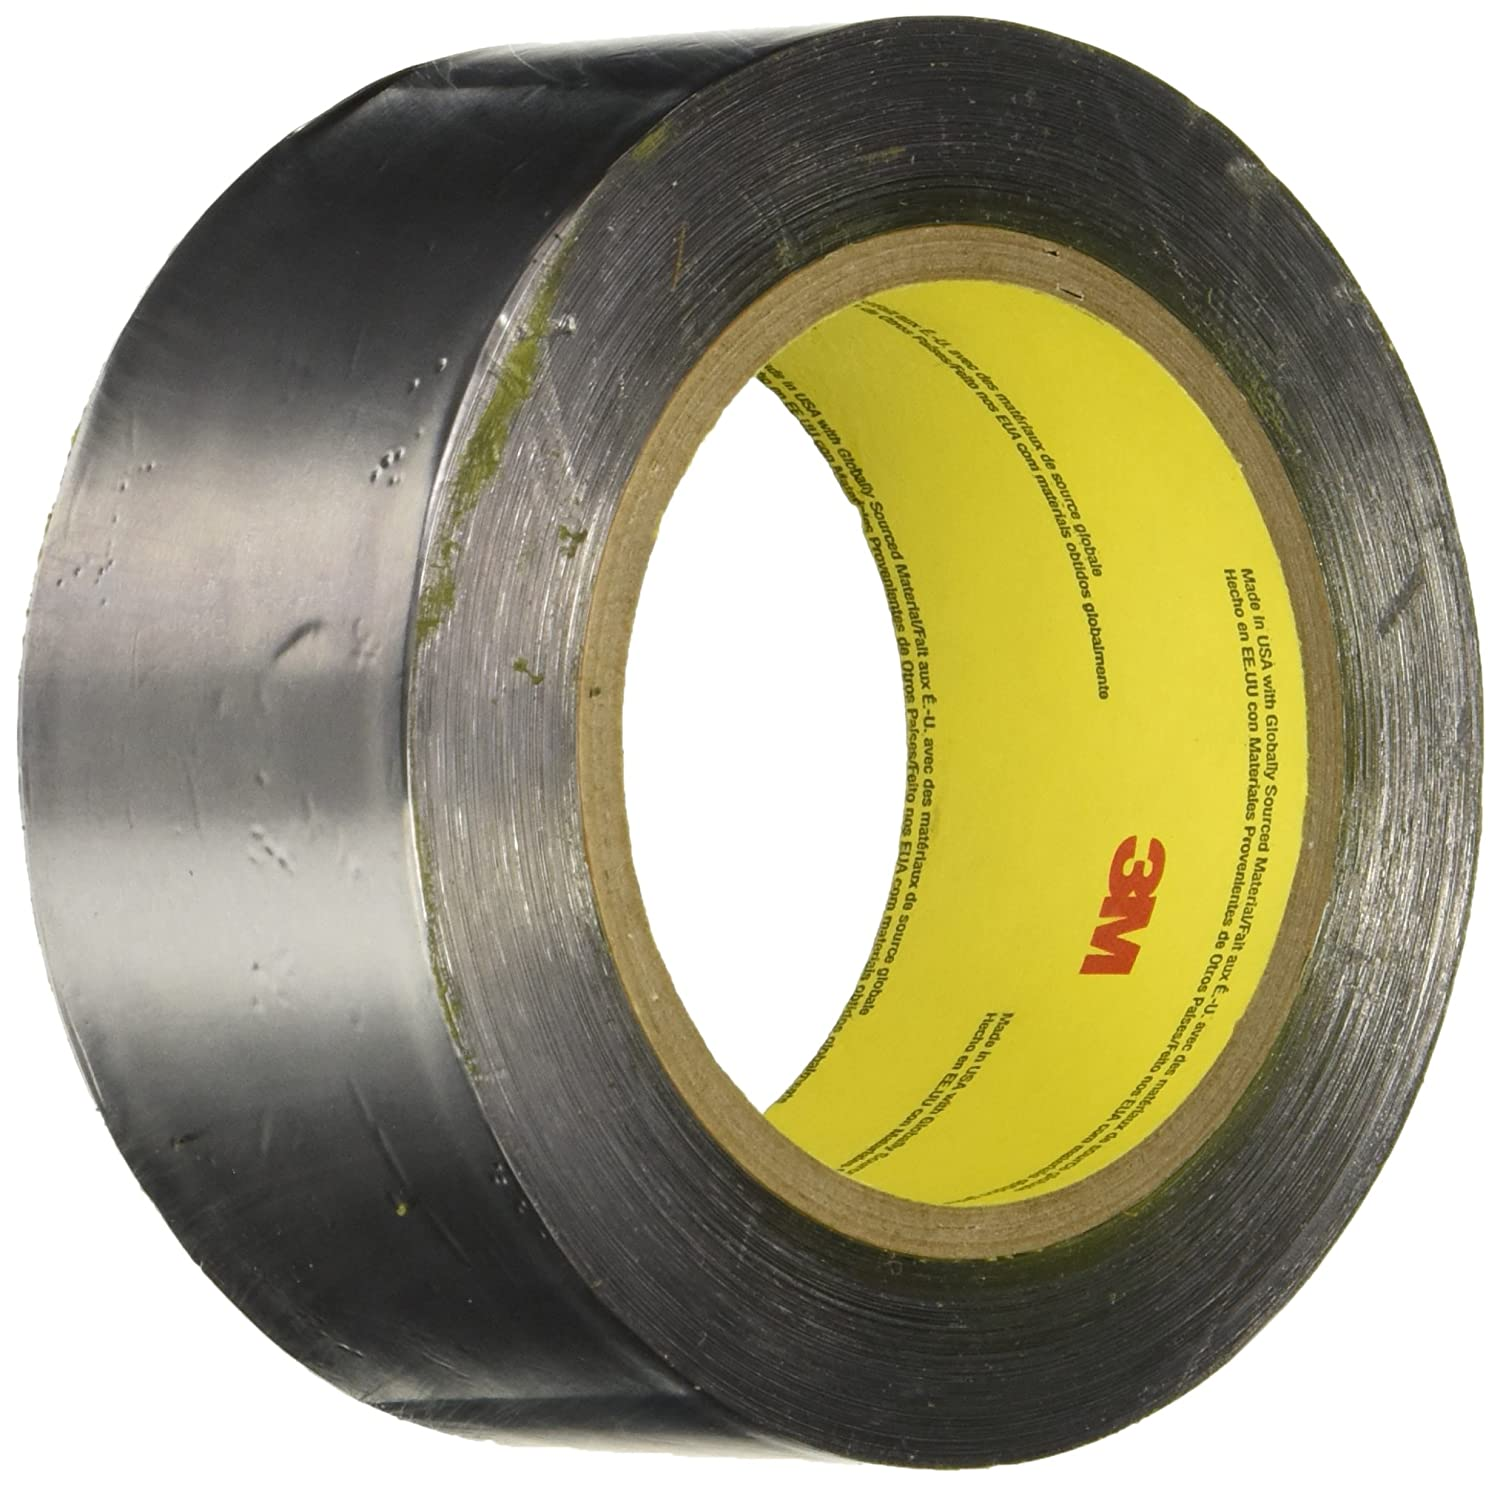 Image of 3M Lead Foil Tape 421, Dark Silver, 2 in x 36 yd, 6.3 mil, 6 rolls per case Home Improvements